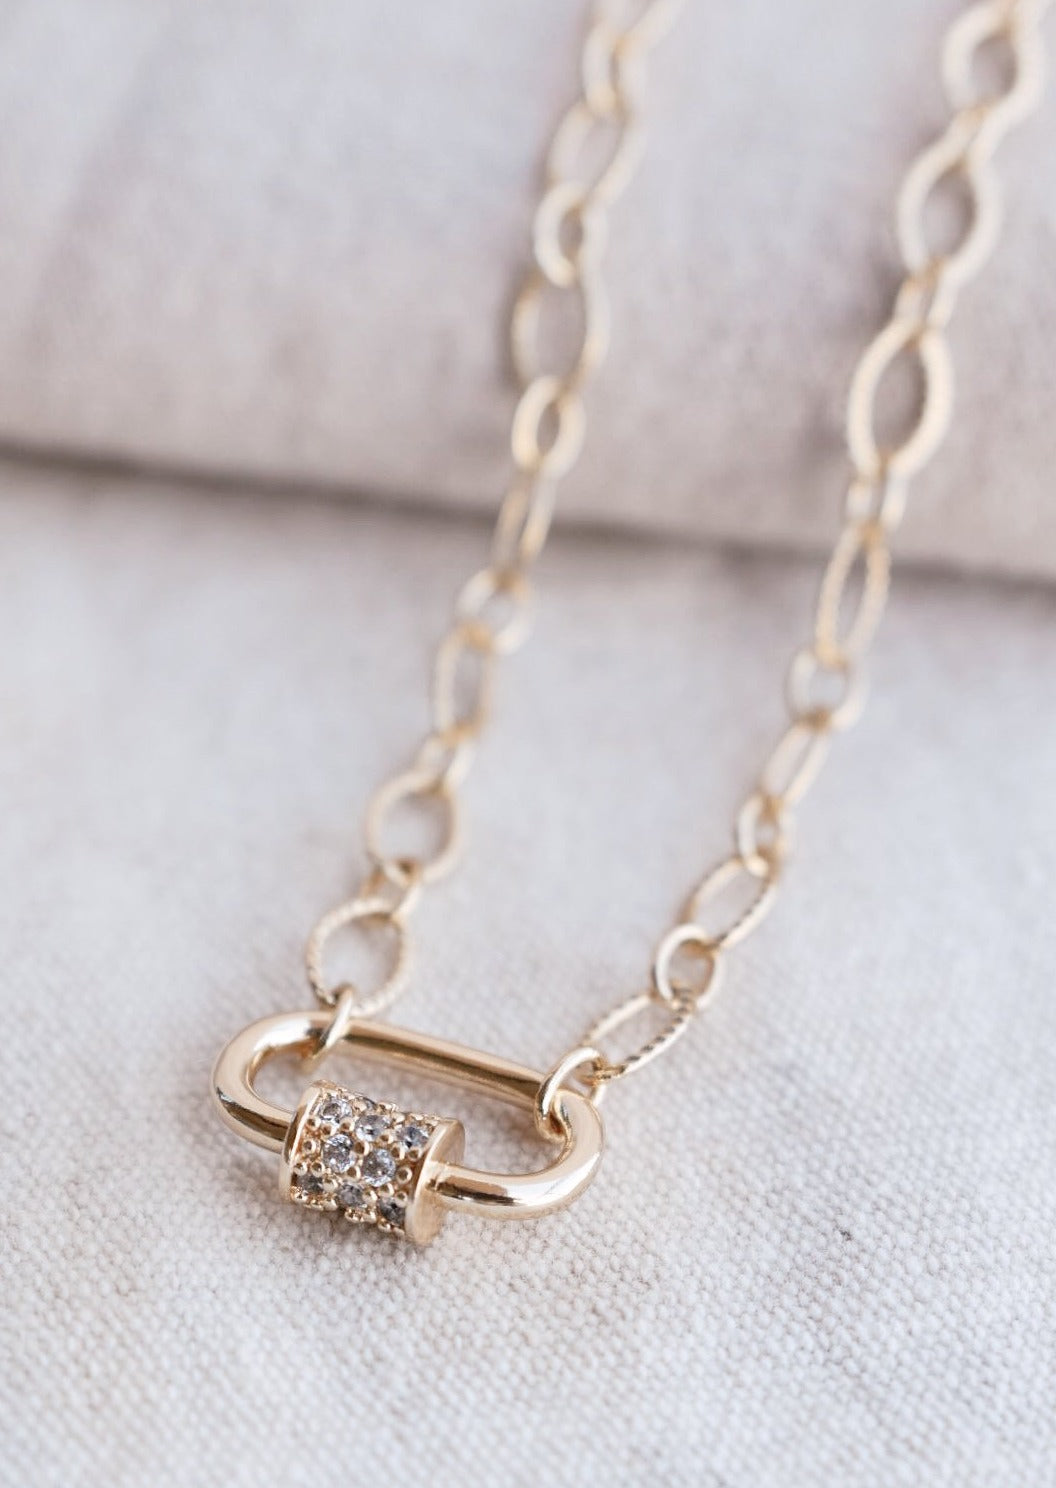 Gold Carabiner Textured Chain Necklace